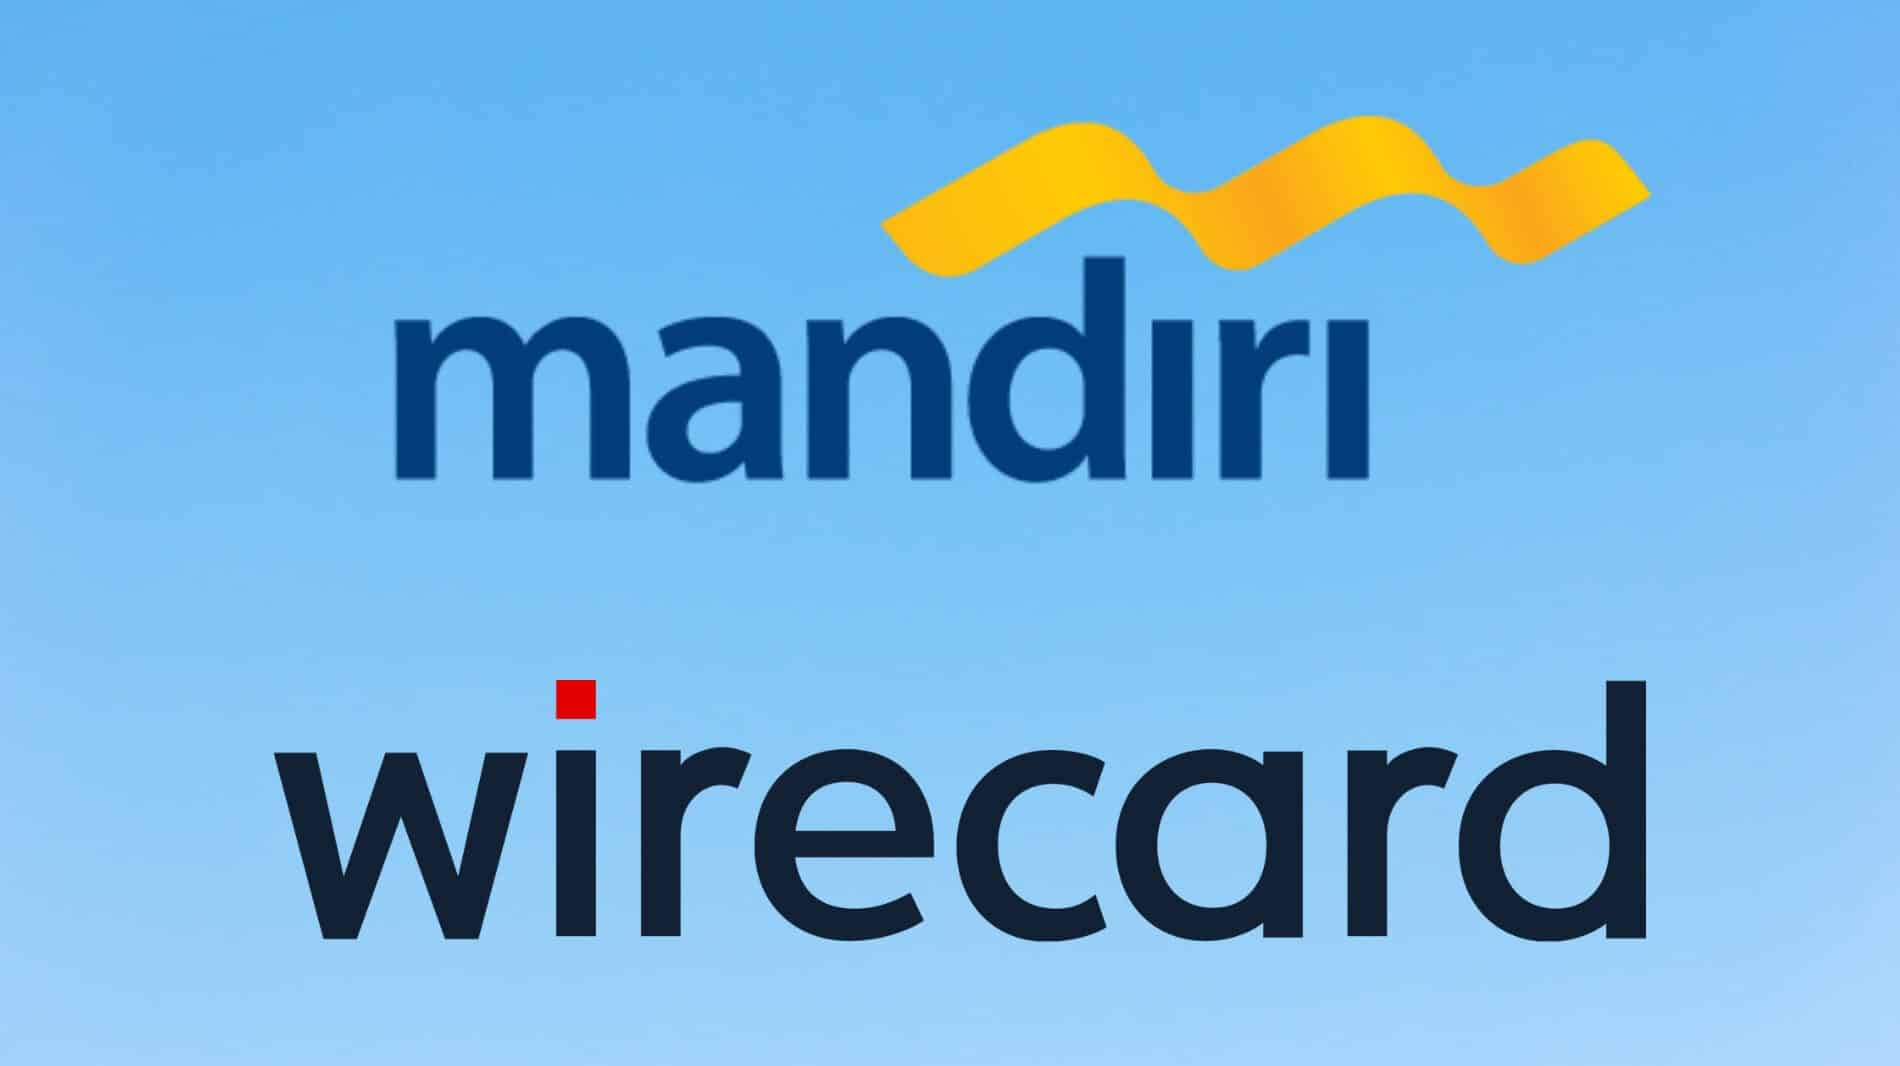 Wirecard and Bank Mandiri Cooperate on Digital Financial Solutions for Corporate Customers